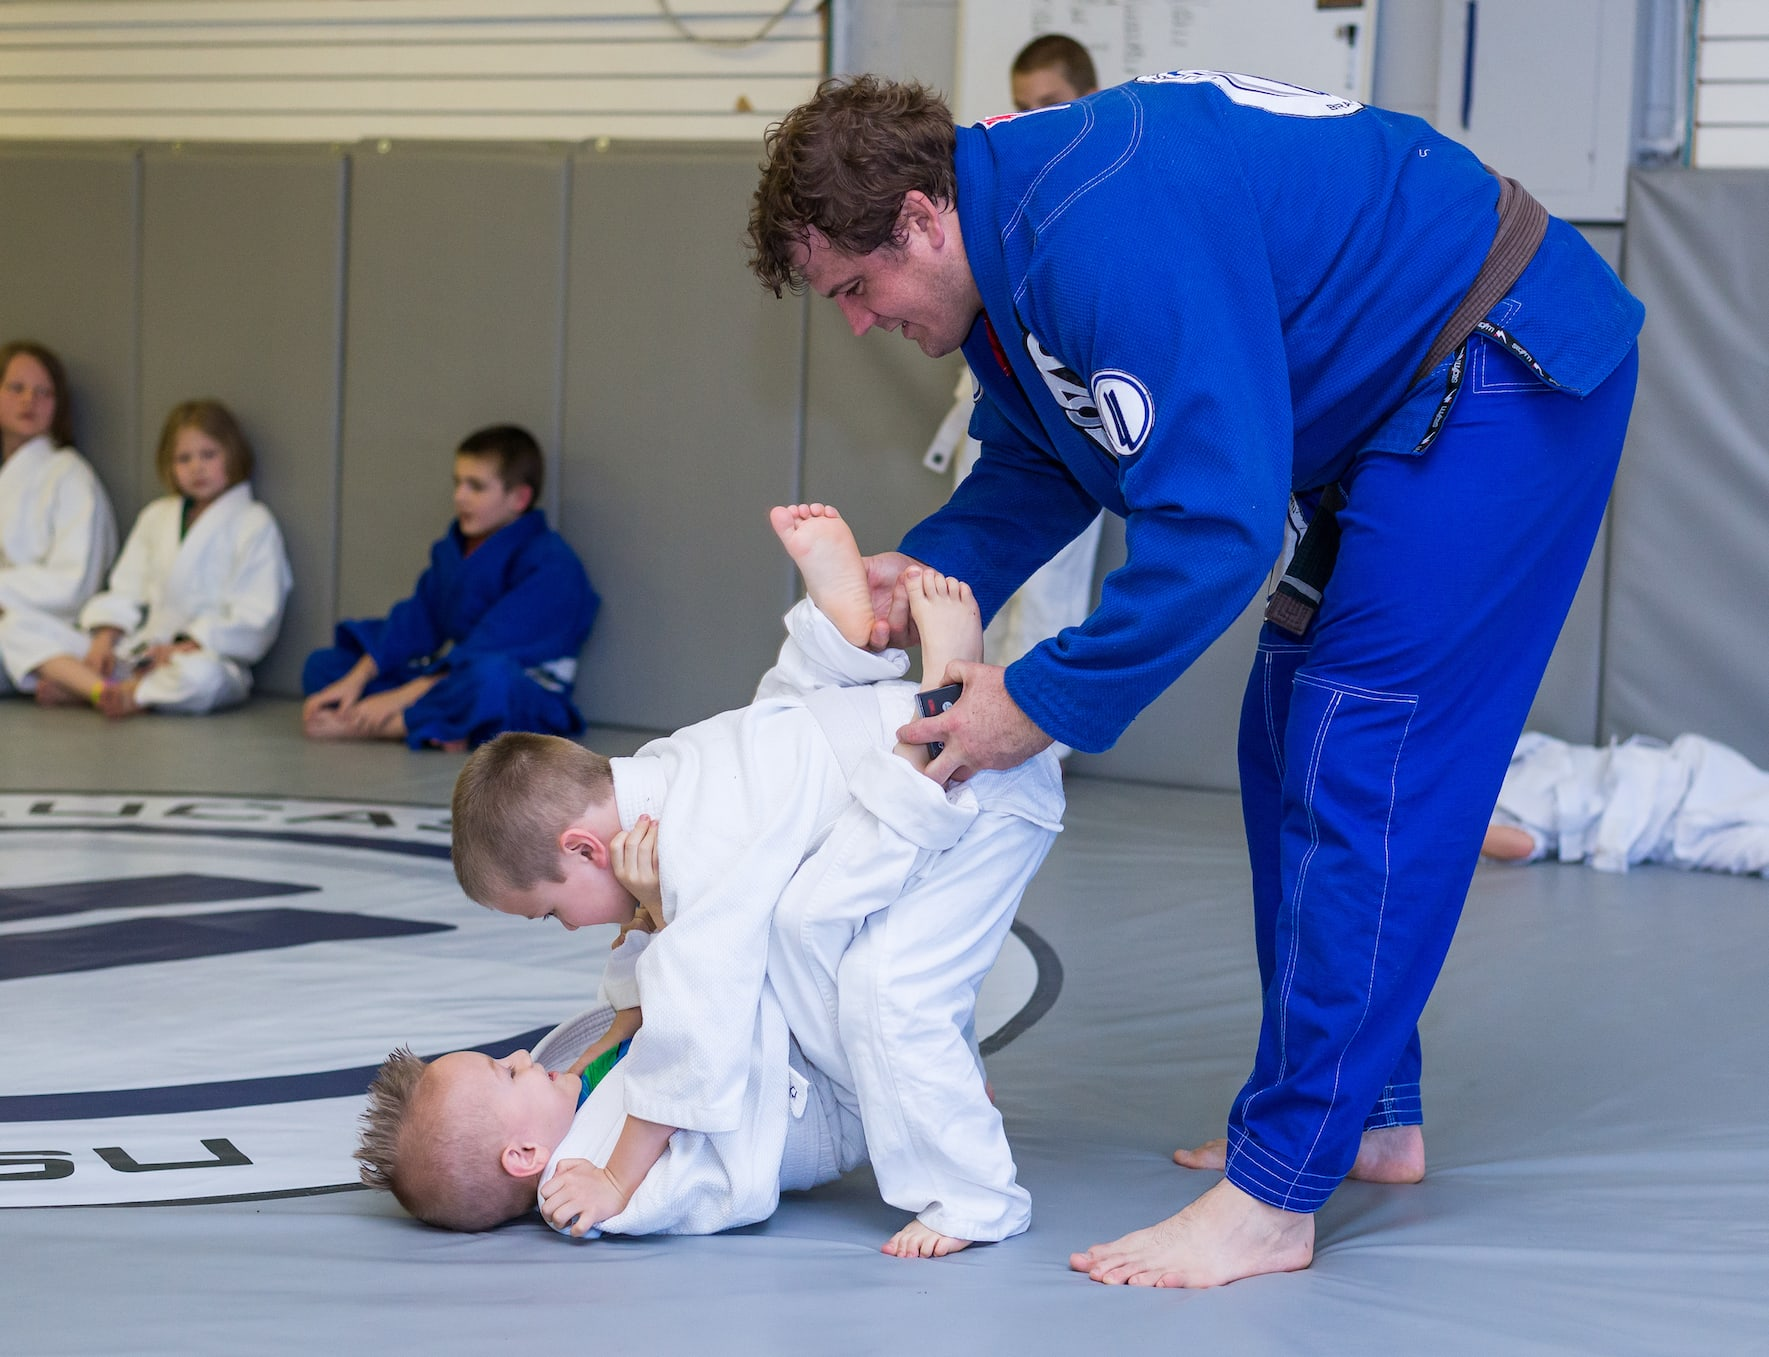 <style> h1 {   text-shadow: 2px 2px 8px #1e2a55; } </style>Helping Knoxville Master The Skills of Ground Grappling